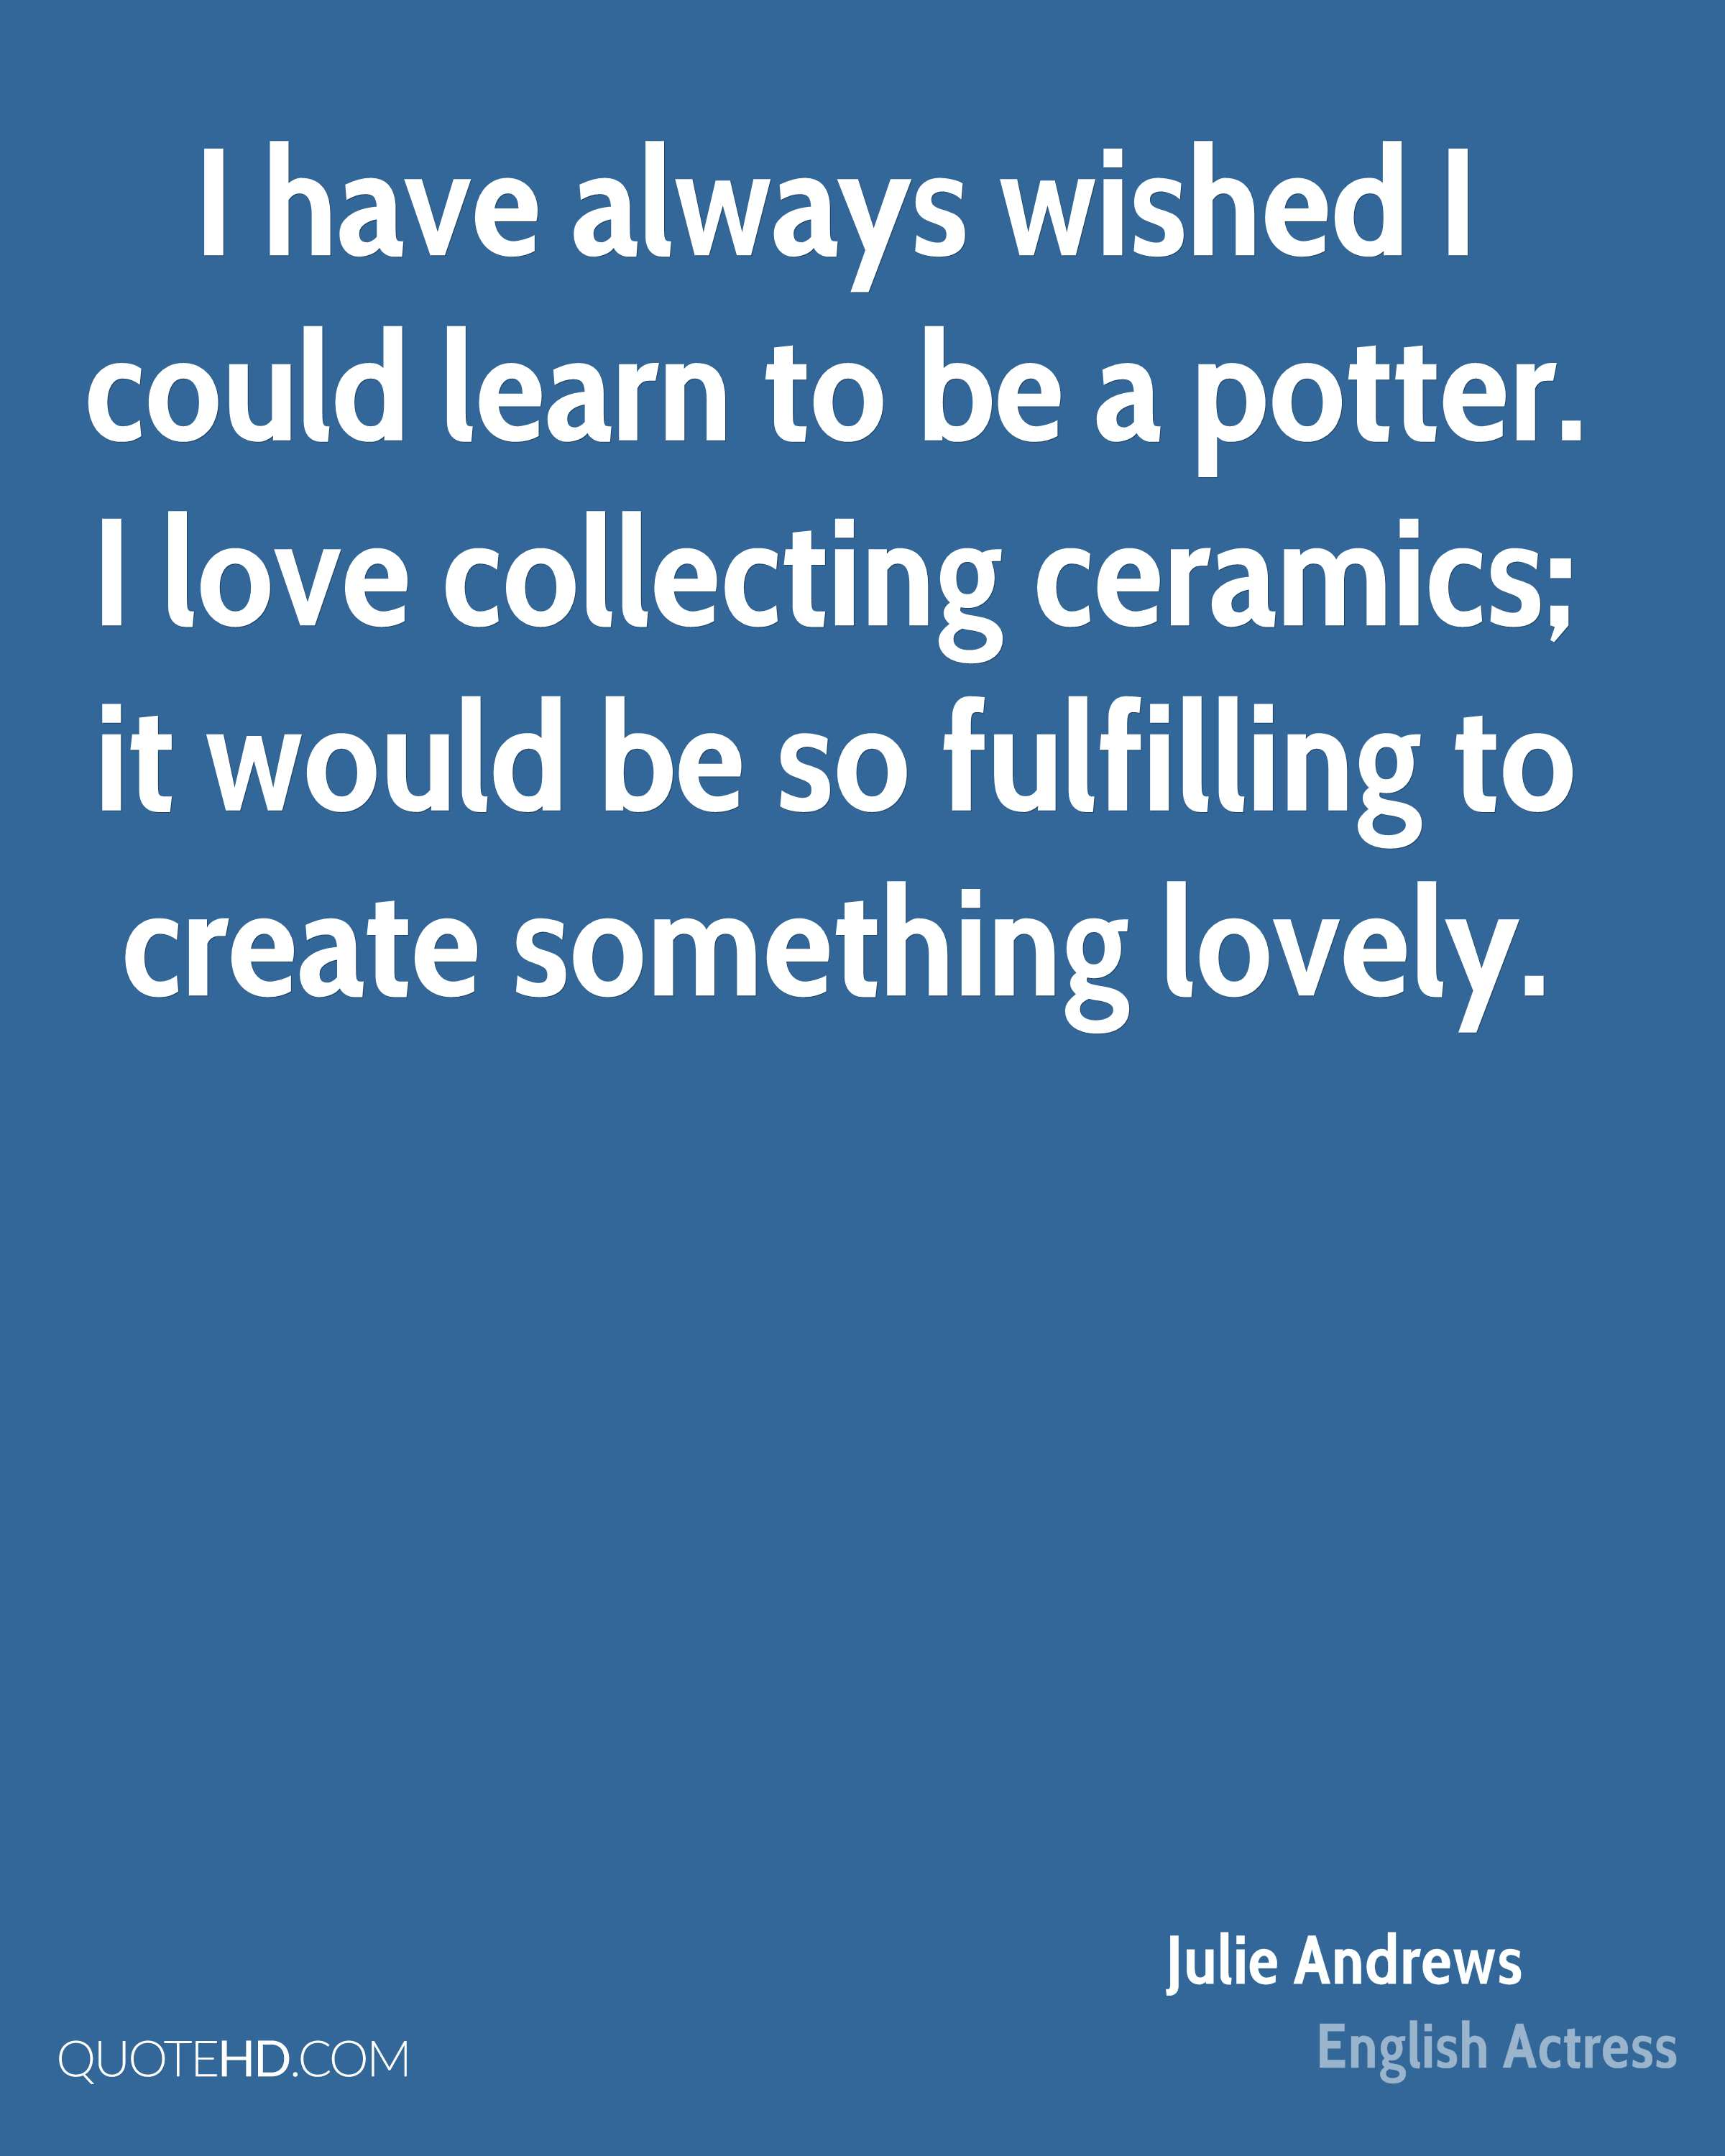 I have always wished I could learn to be a potter. I love collecting ceramics; it would be so fulfilling to create something lovely.